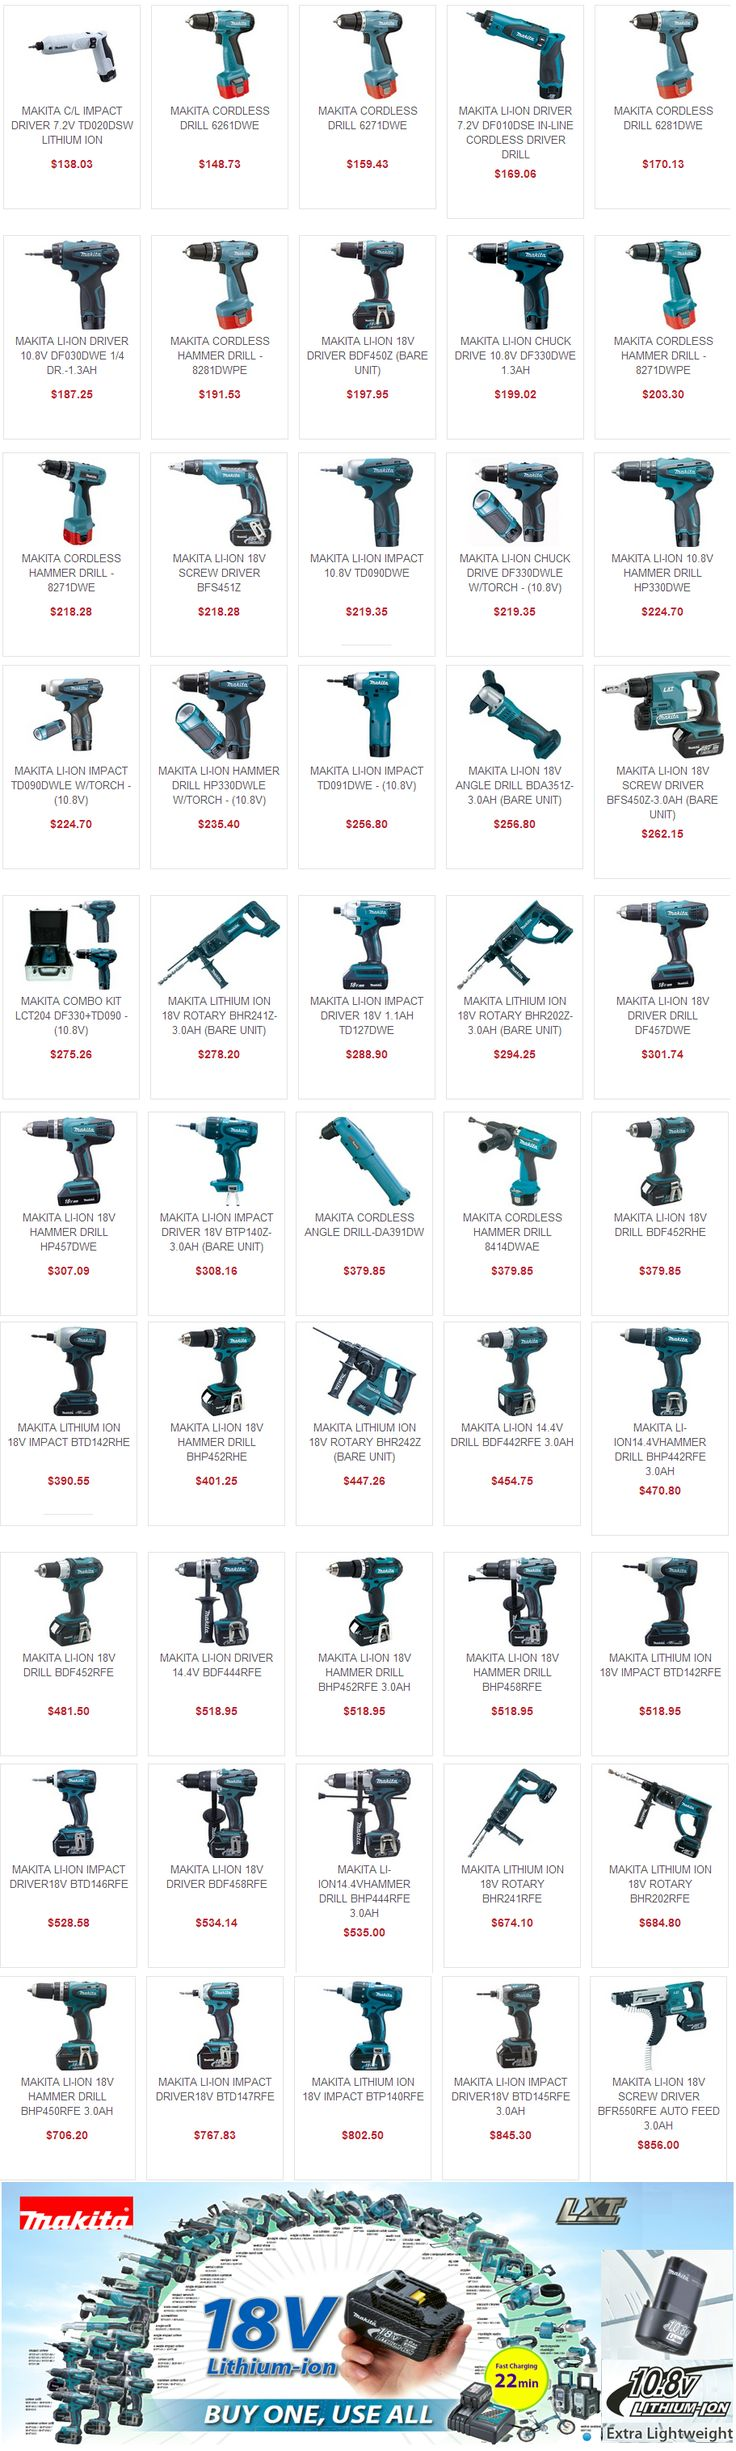 Makita Power Tool Prices